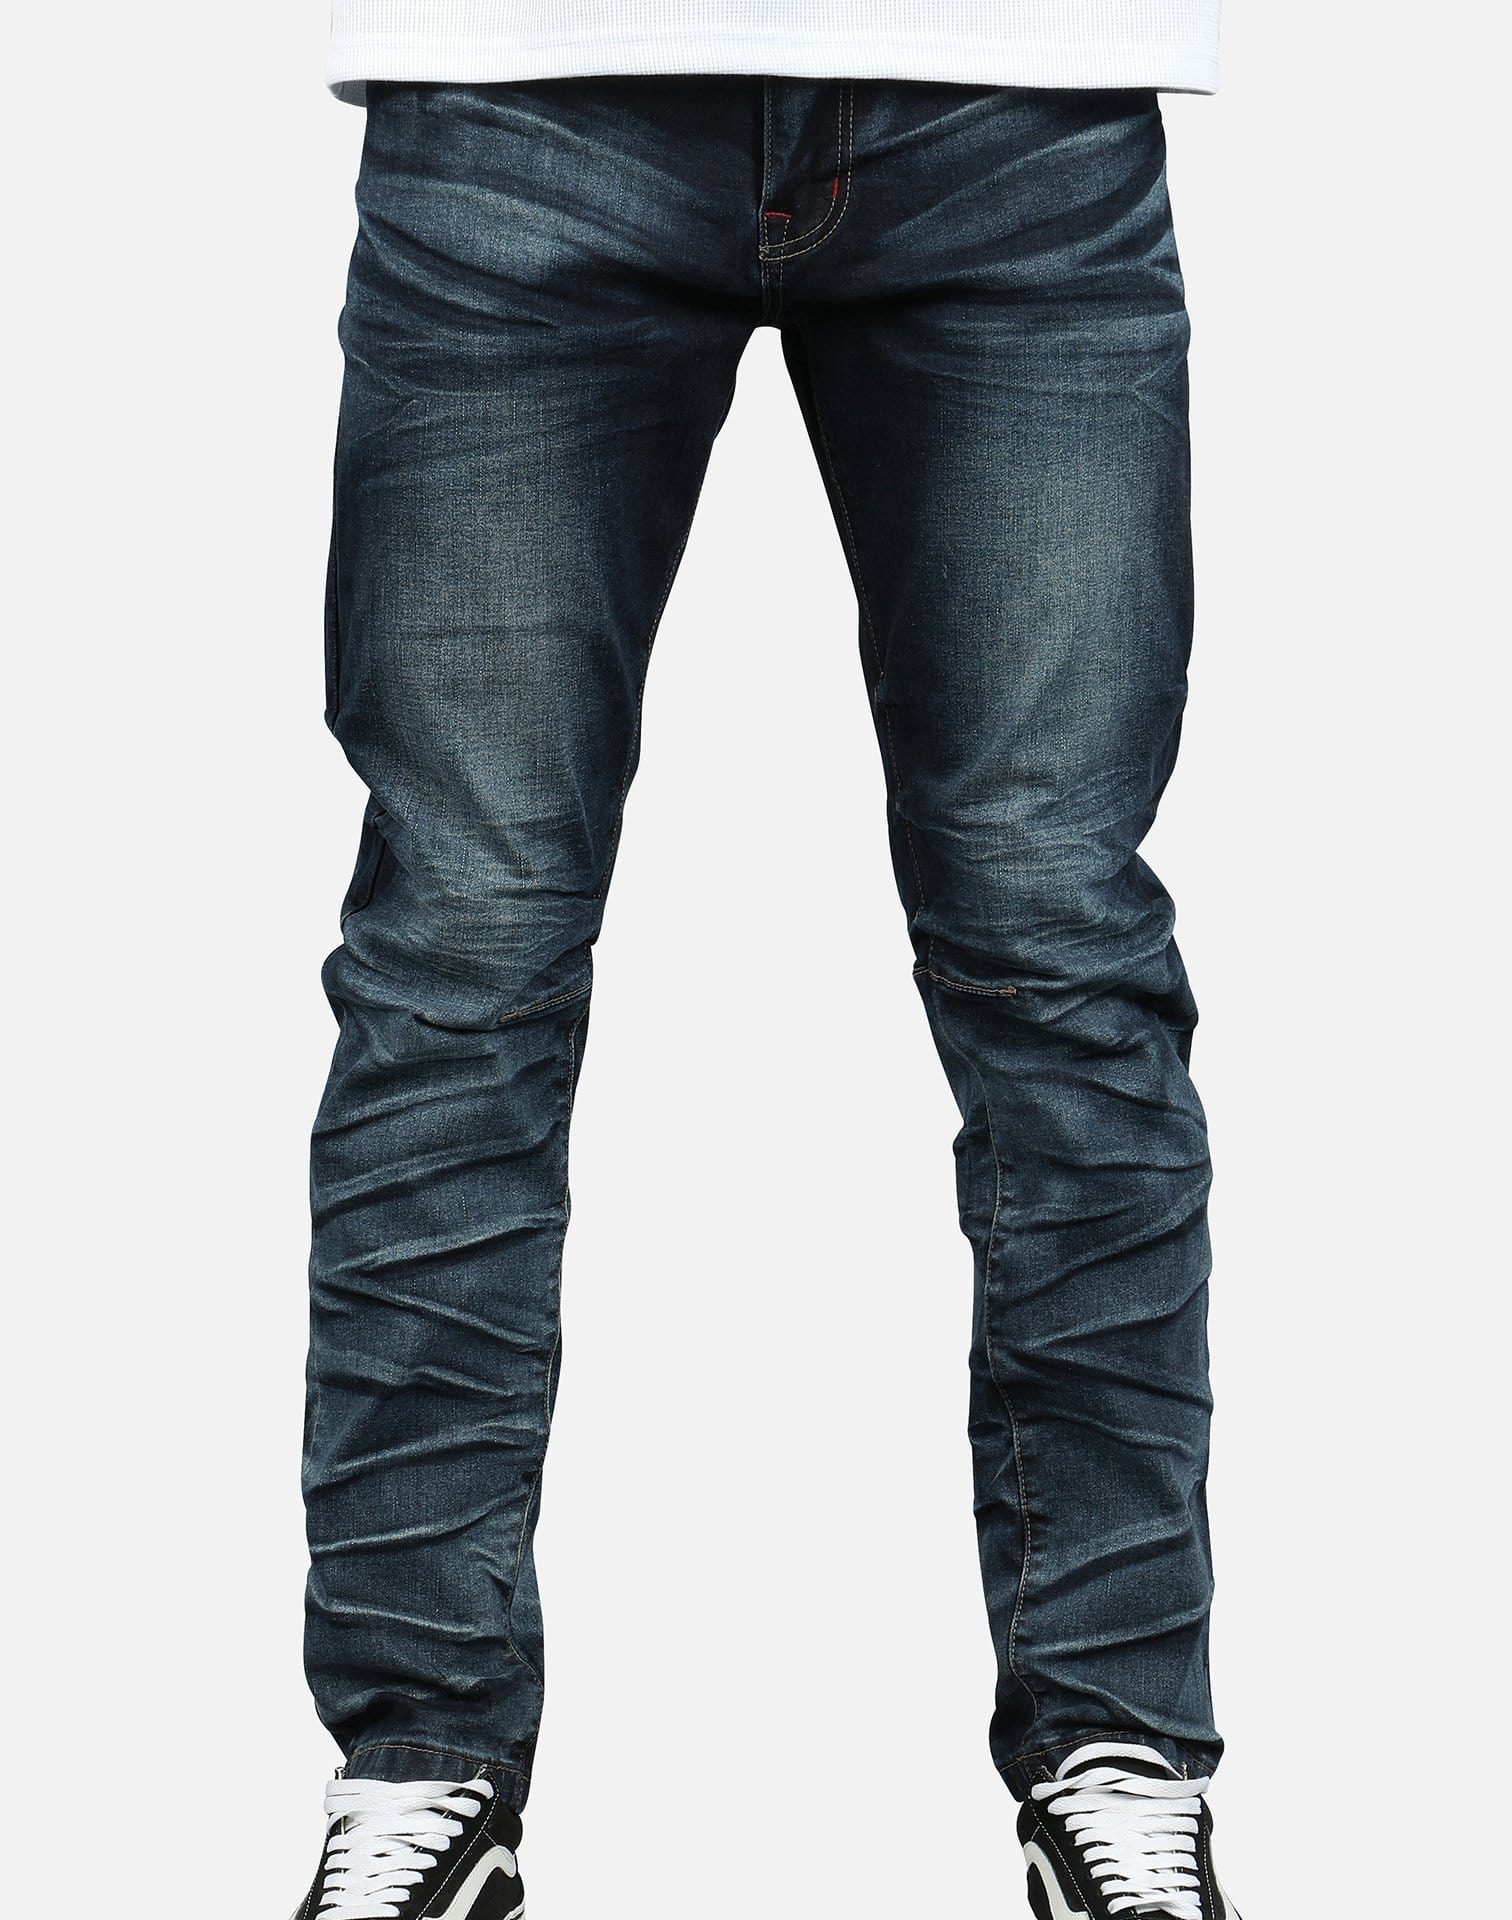 Smoke Rise Core Denim Reflex Jeans